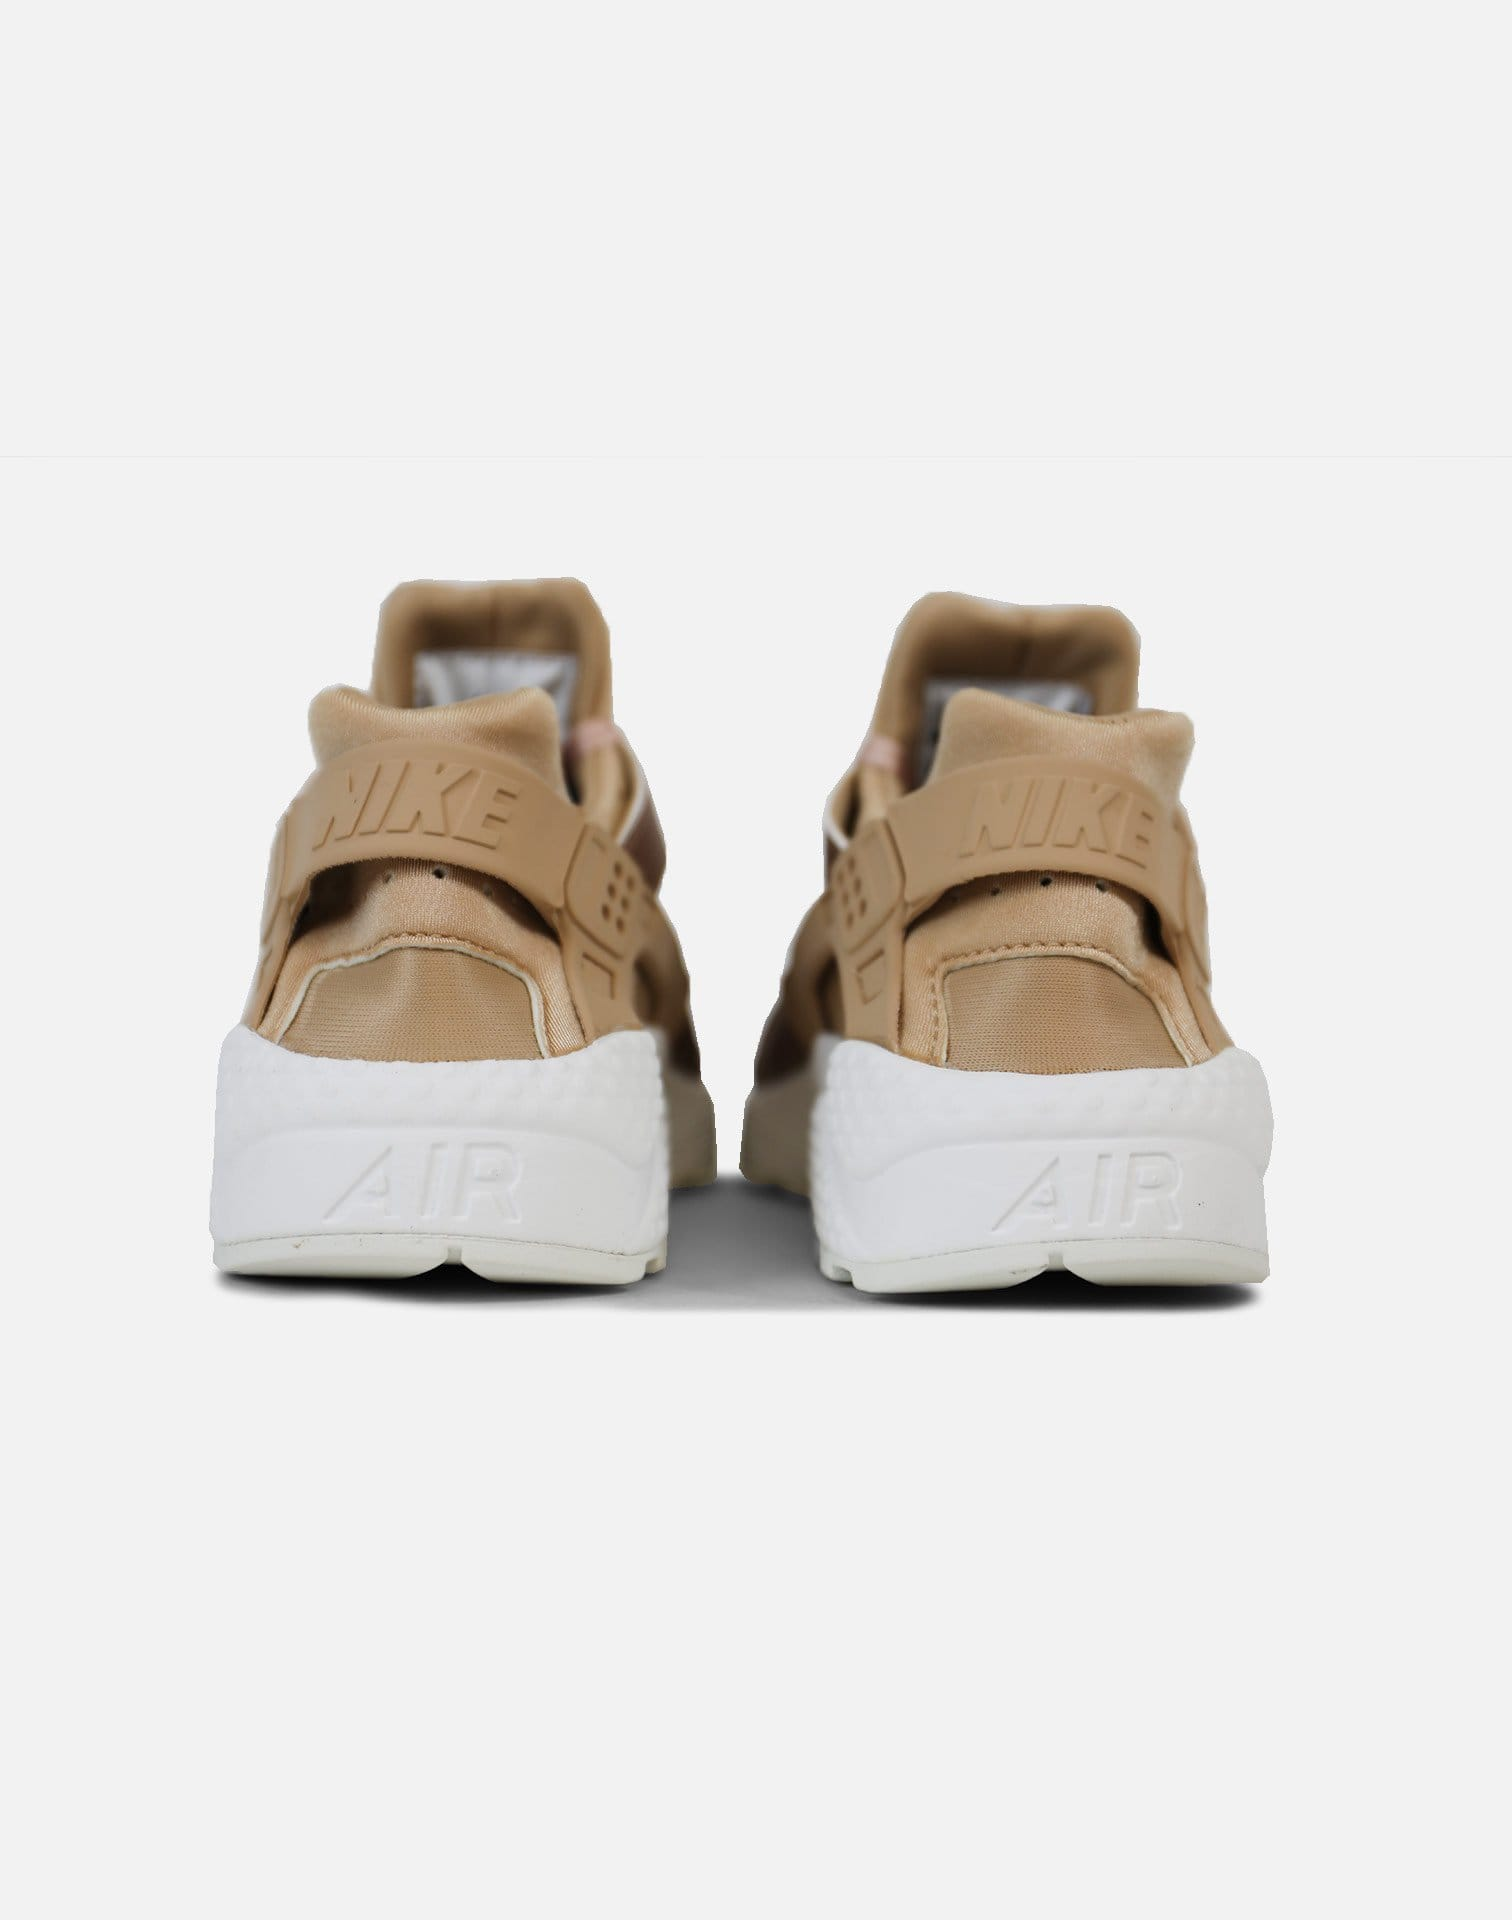 Nike Air Huarache Run SE (Metallic Red Bronze/Elm)